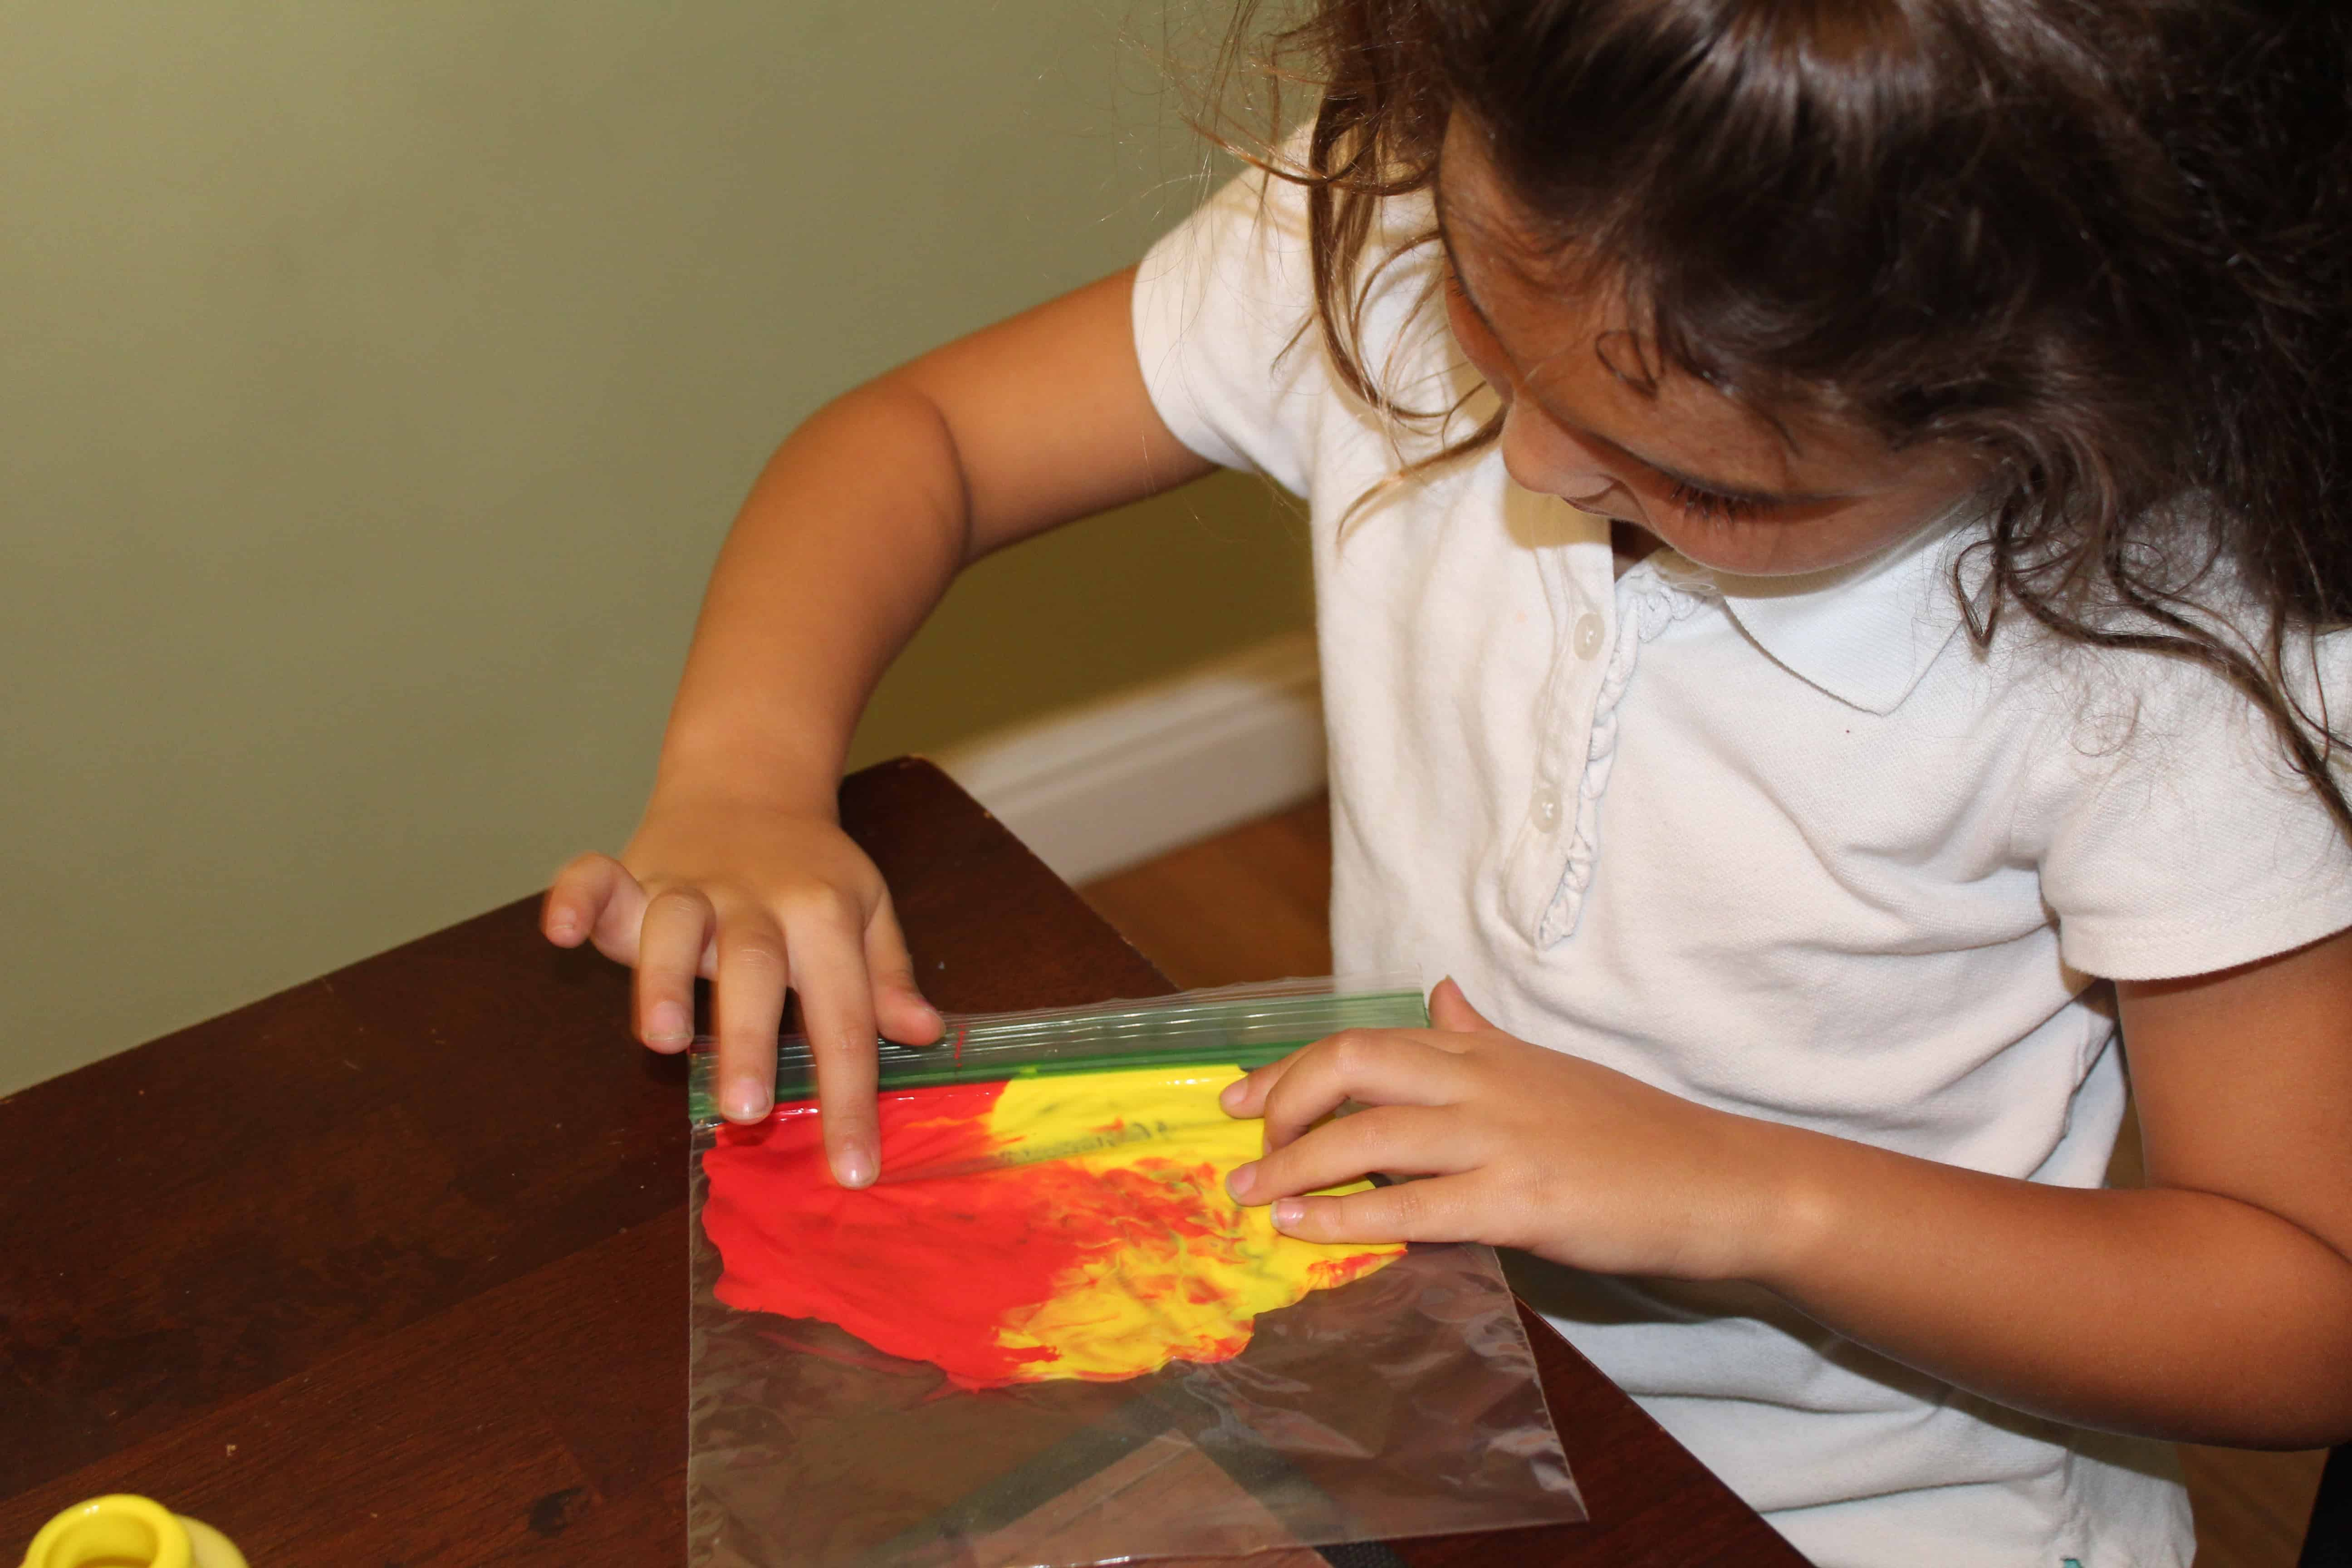 little girl mixing paint colors in a ziploc bag